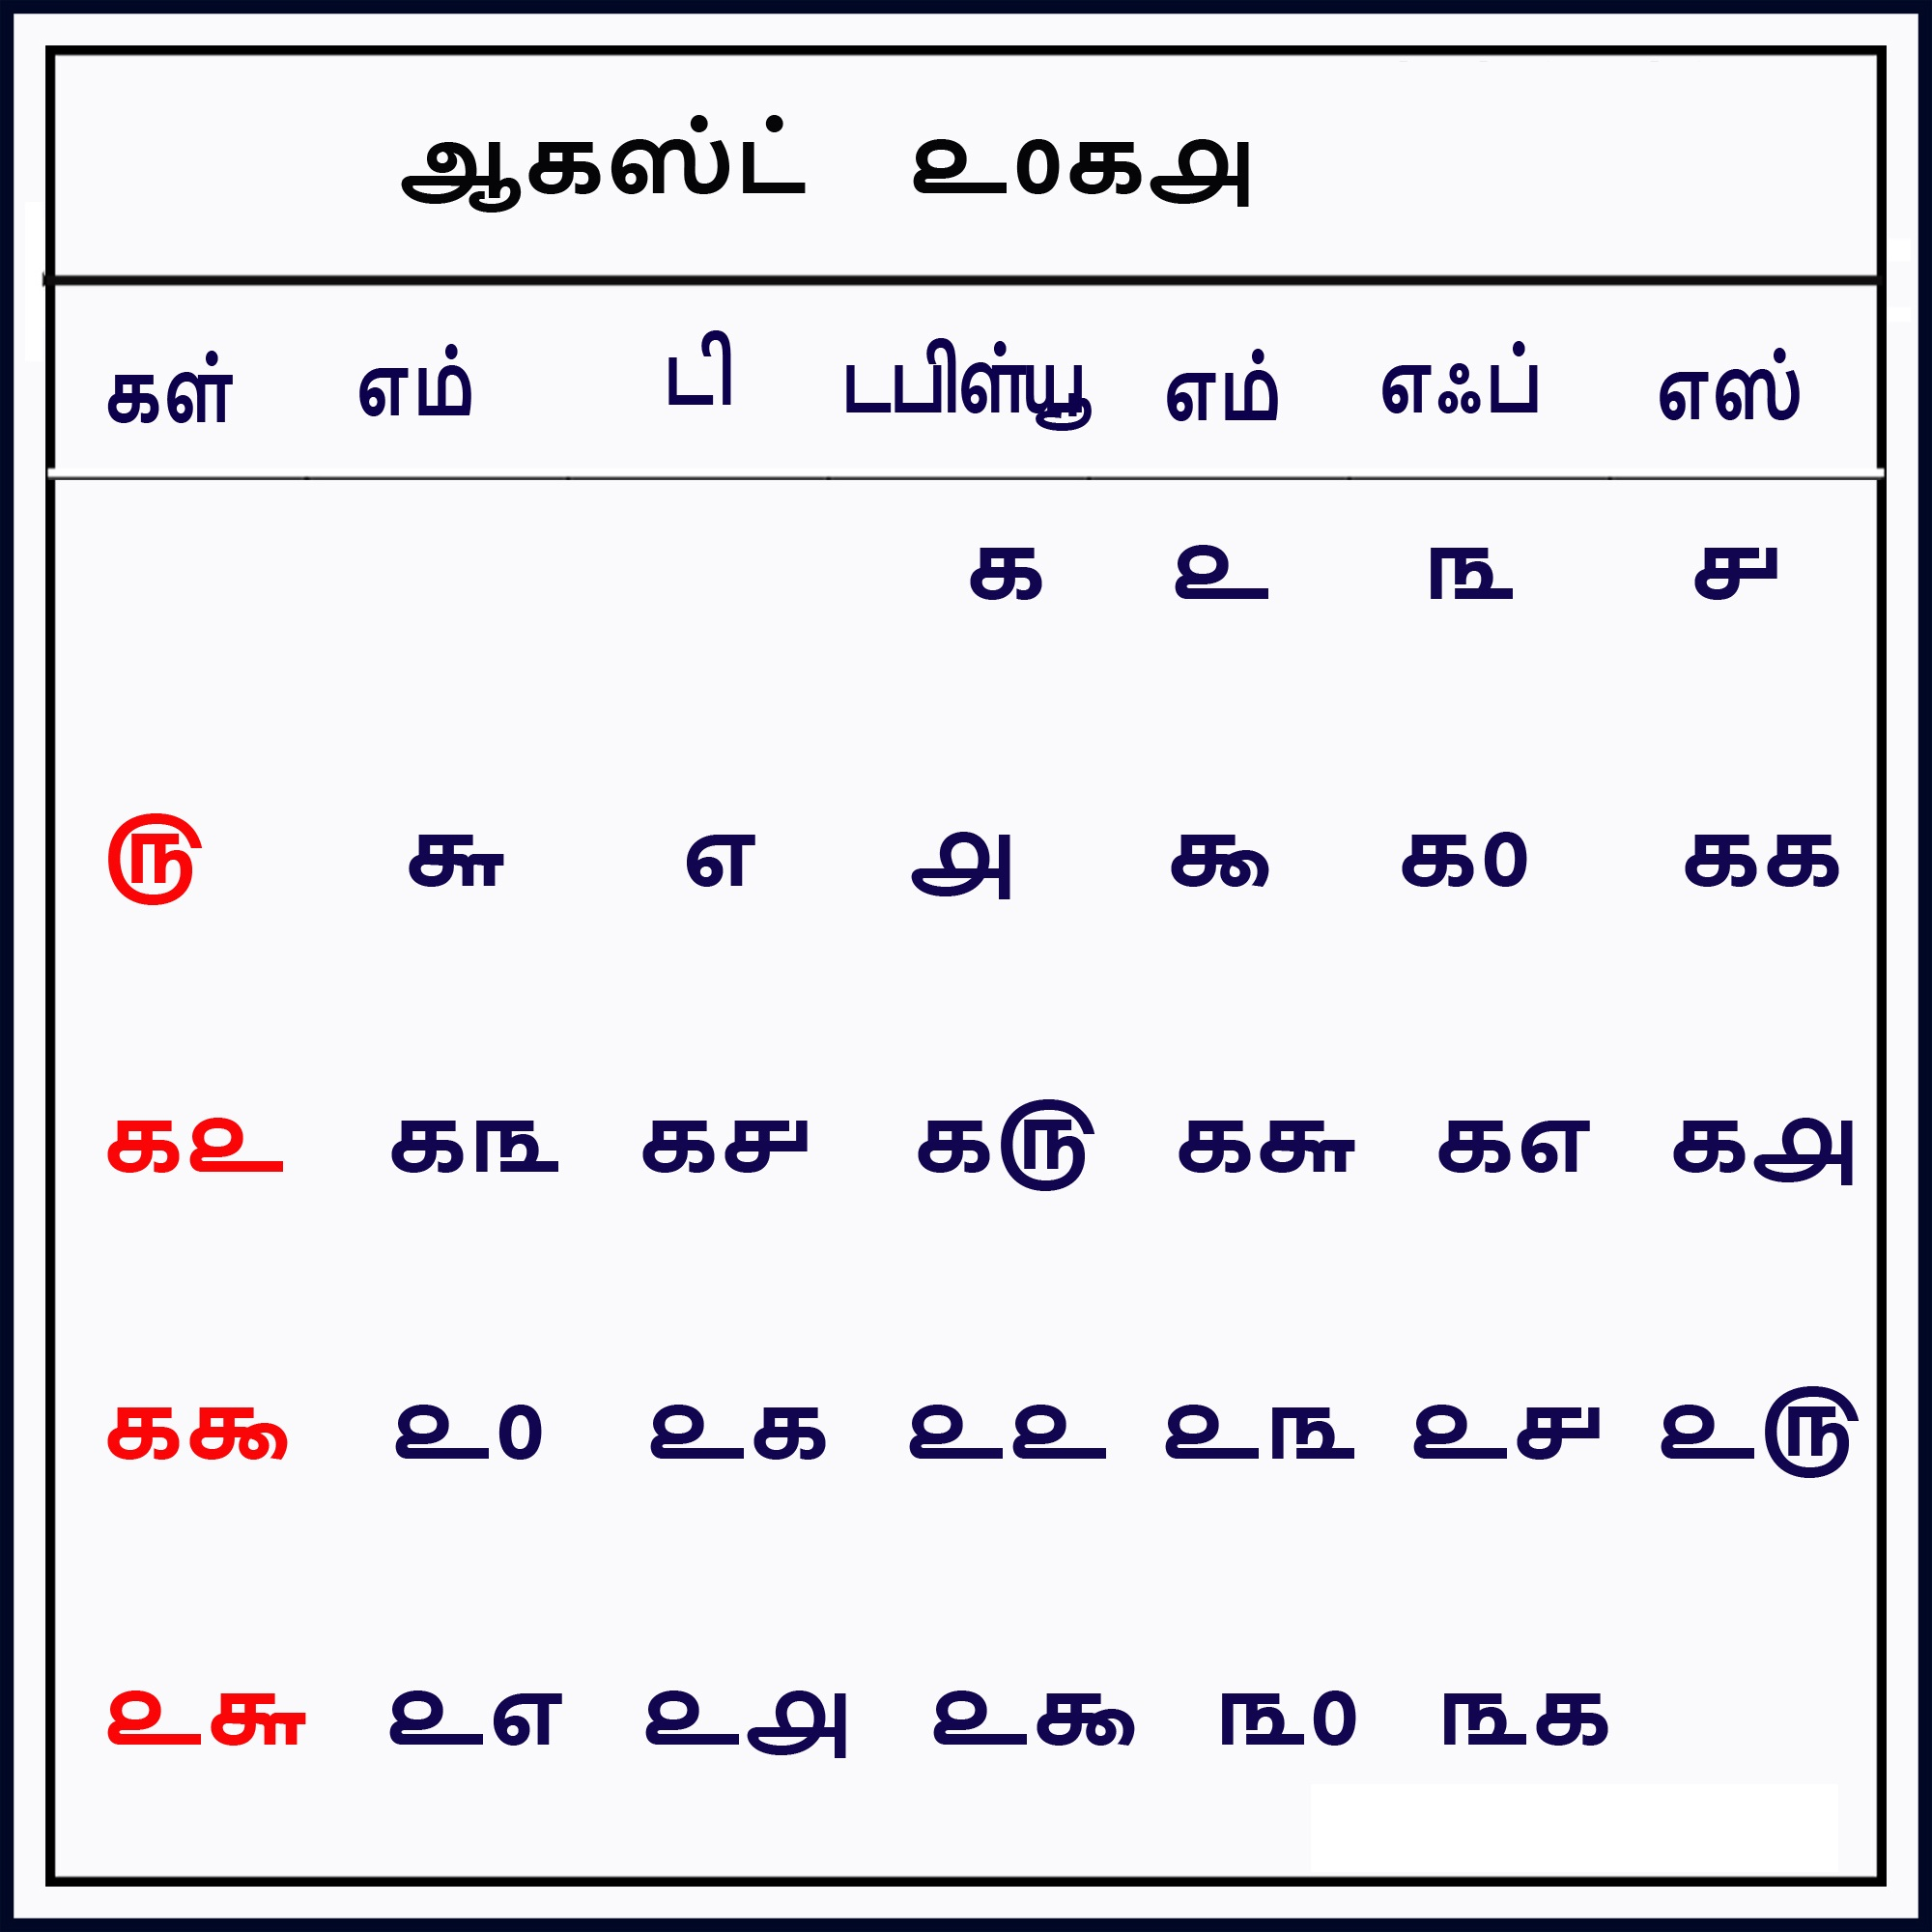 Tamil Calendar 2018 August With Holidays